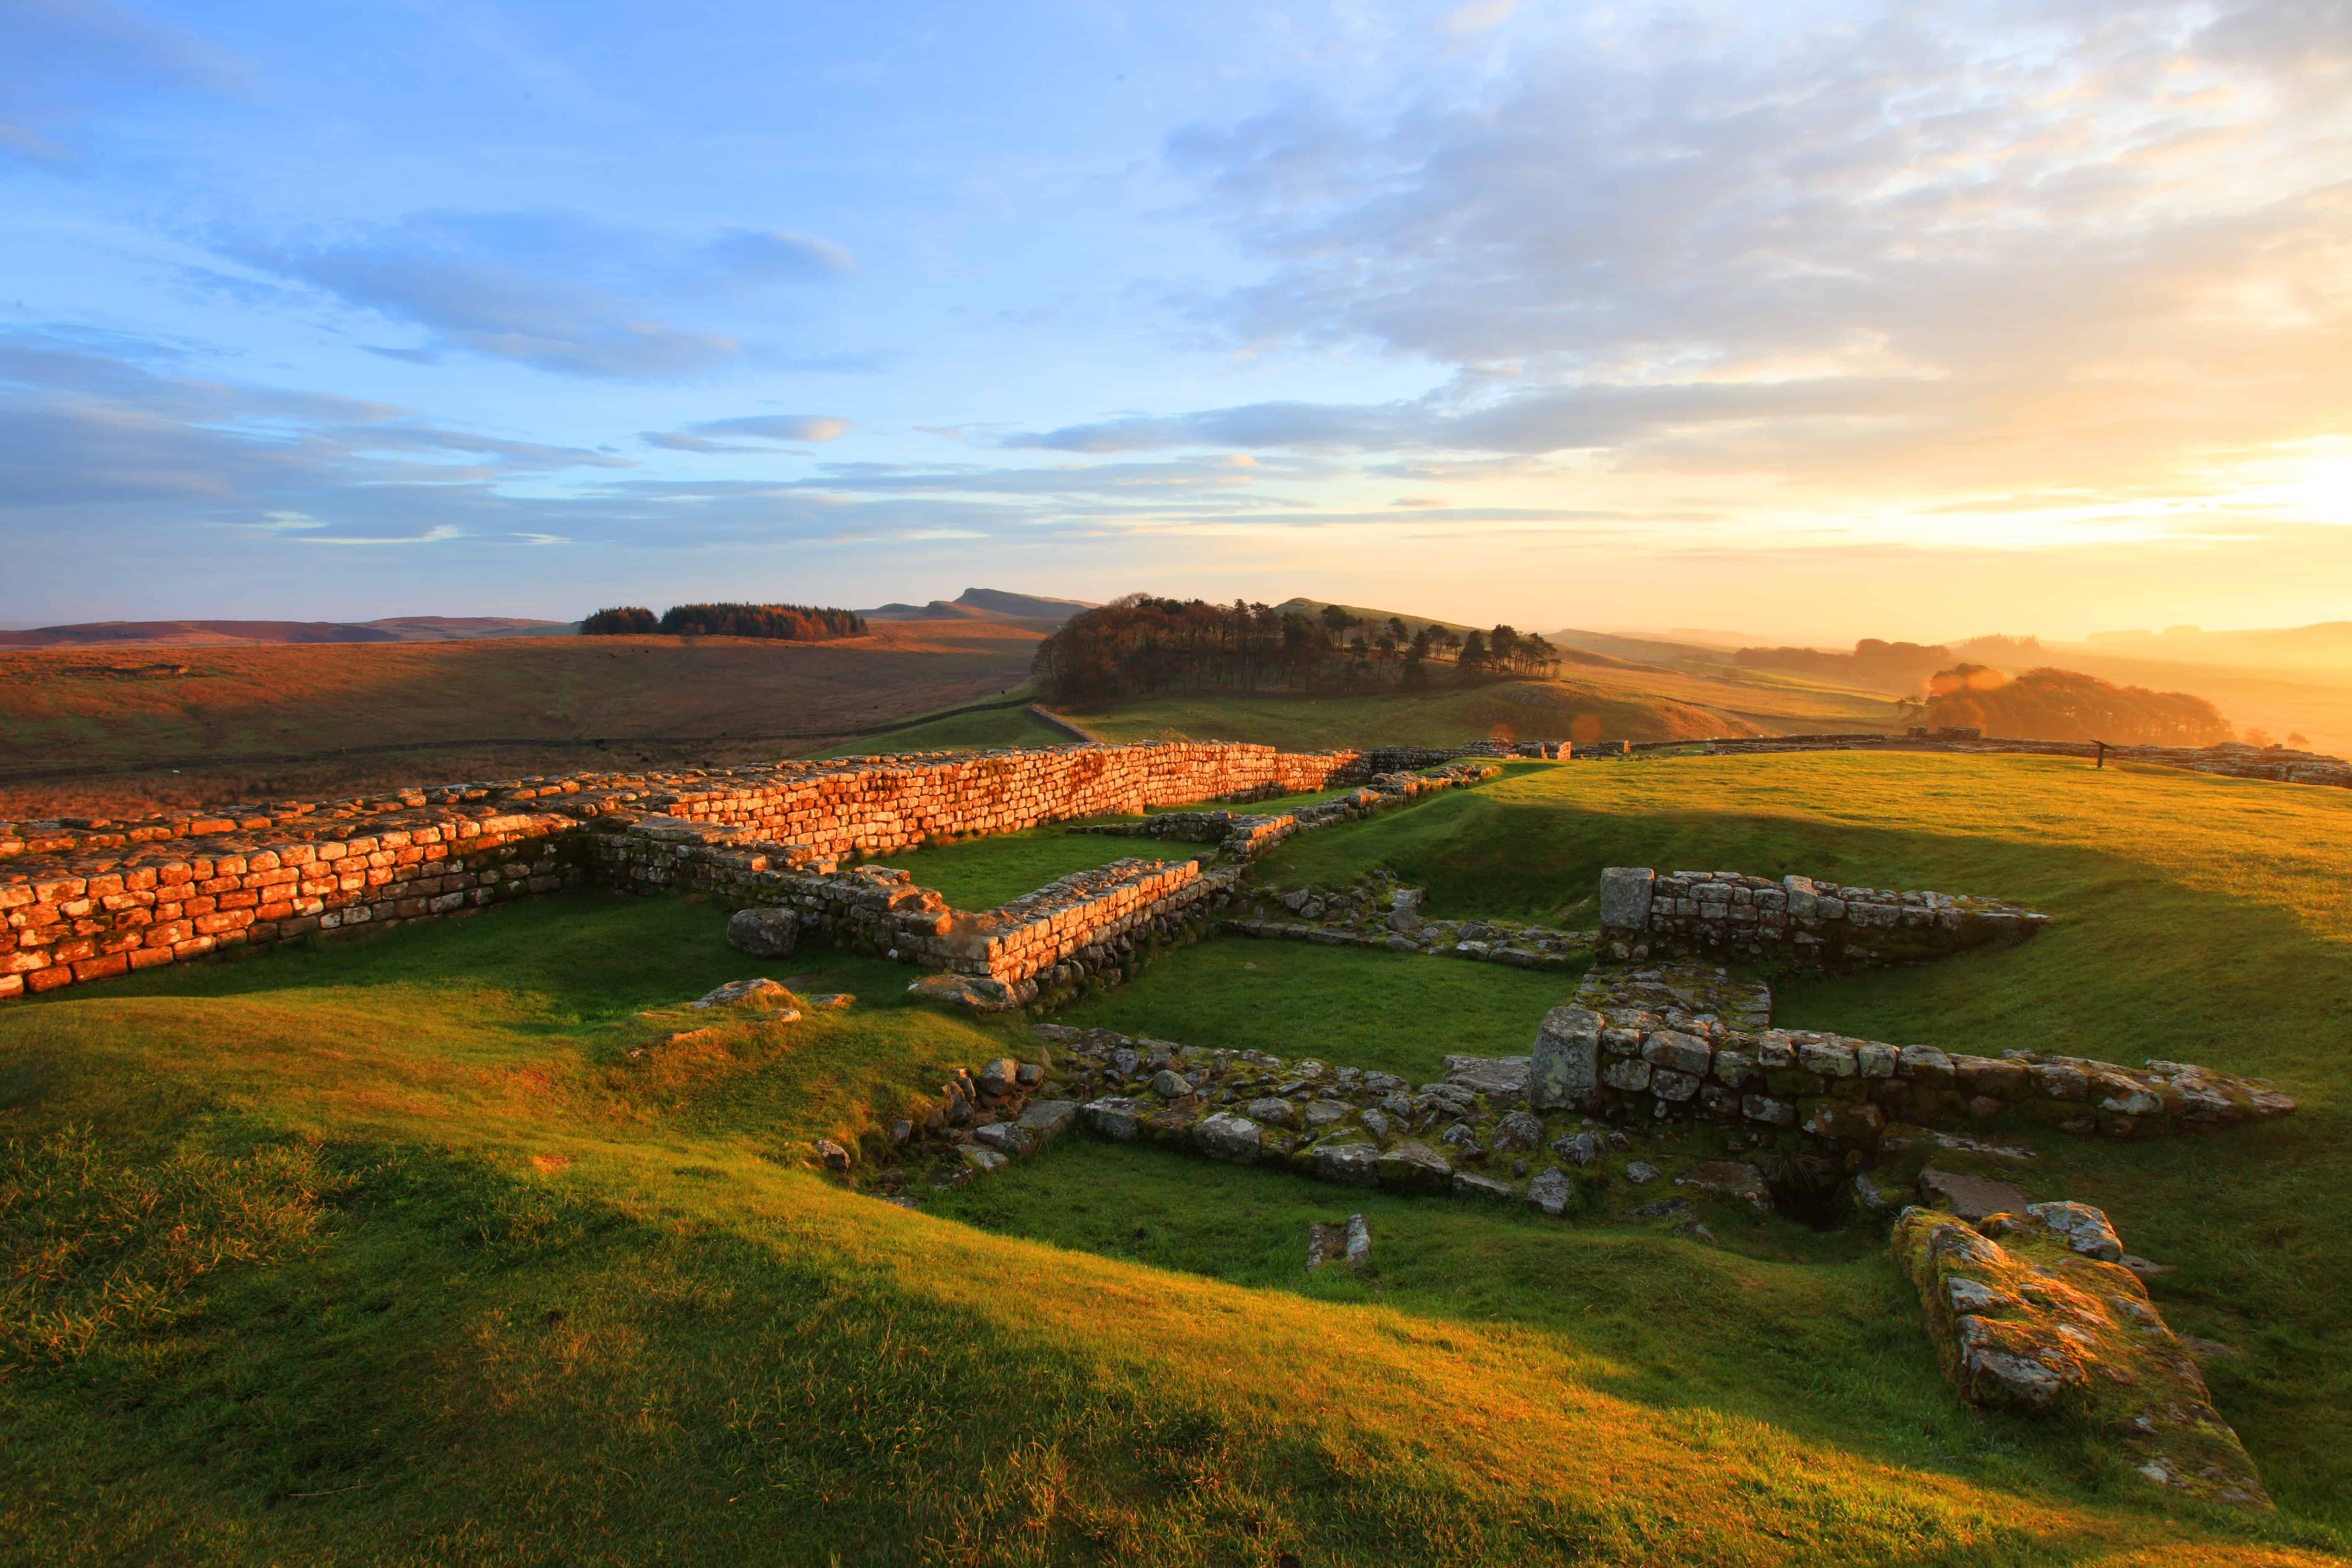 Hadrian's Wall free online course image